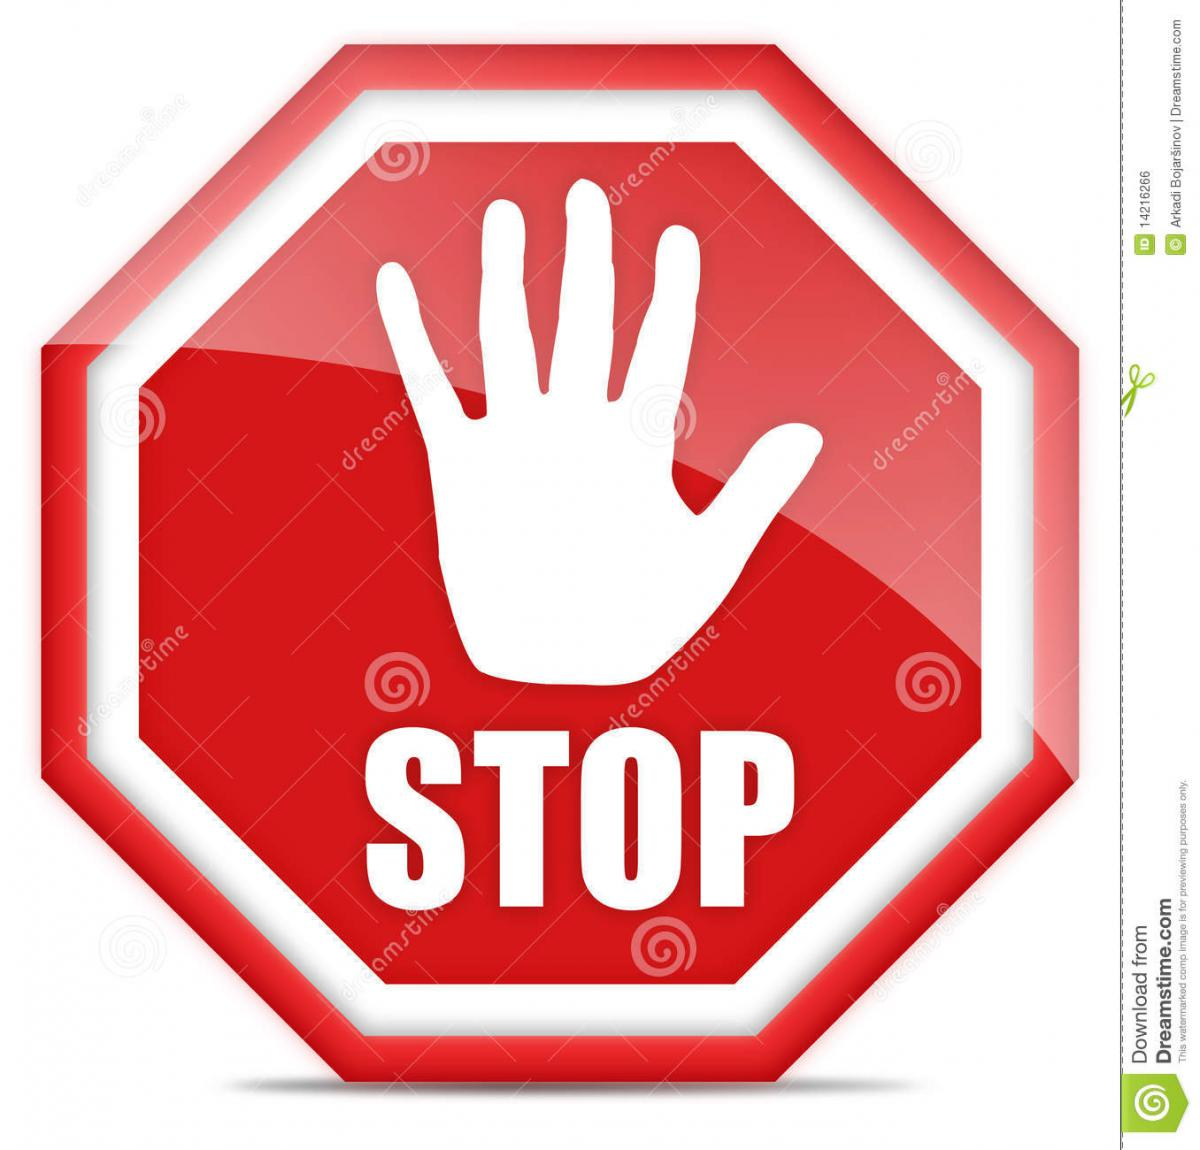 It is an image of Inventive Printable Picture of a Stop Sign